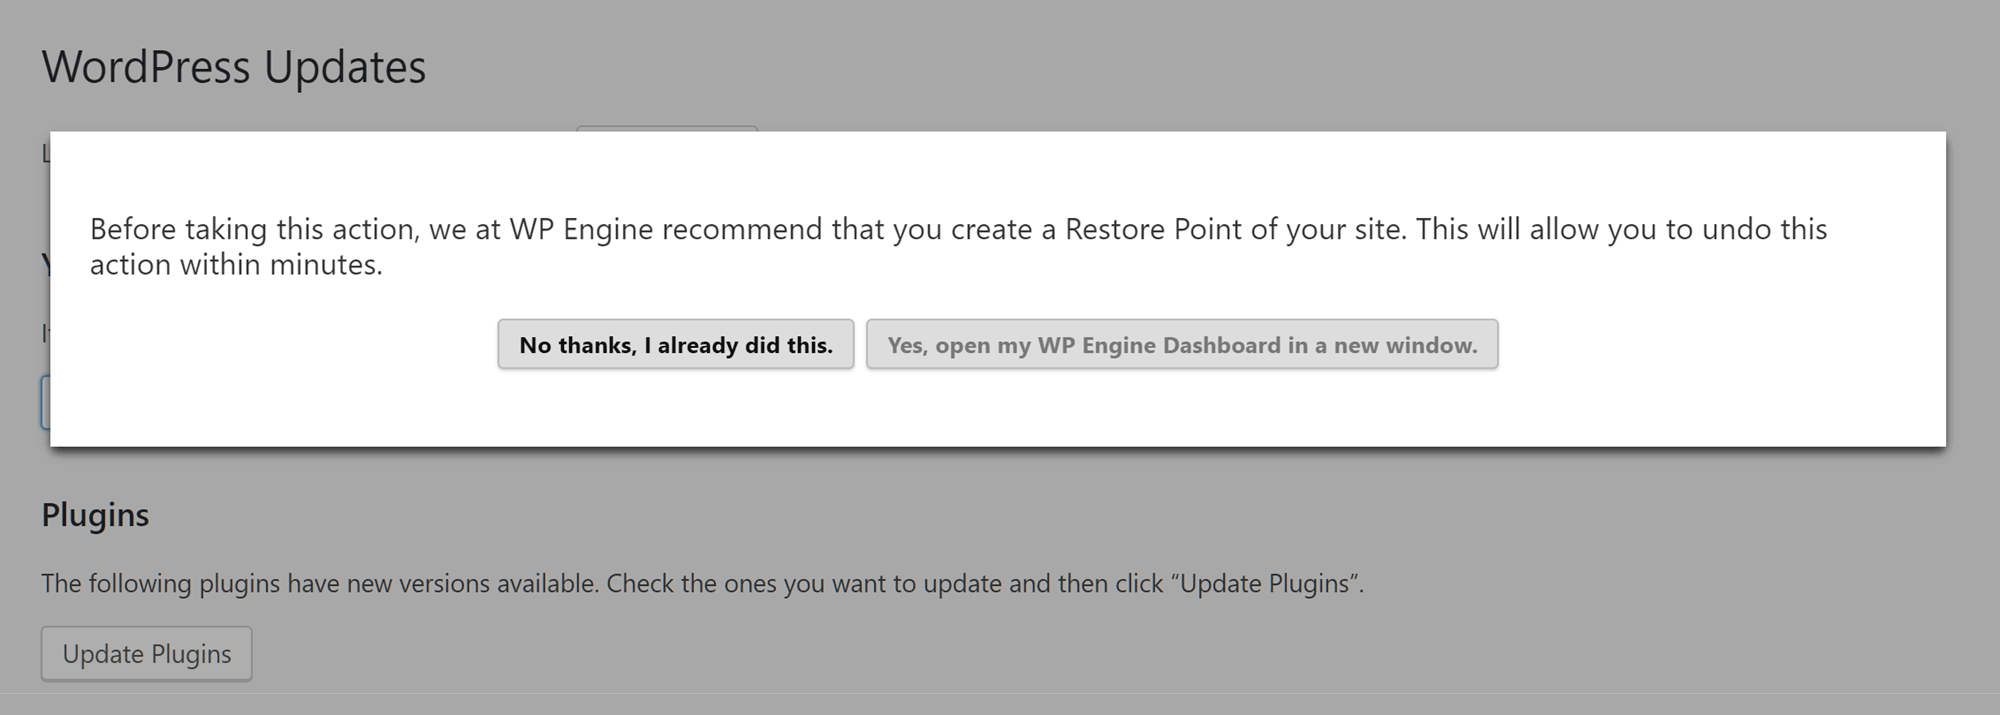 Create Restore Point in WP Engine